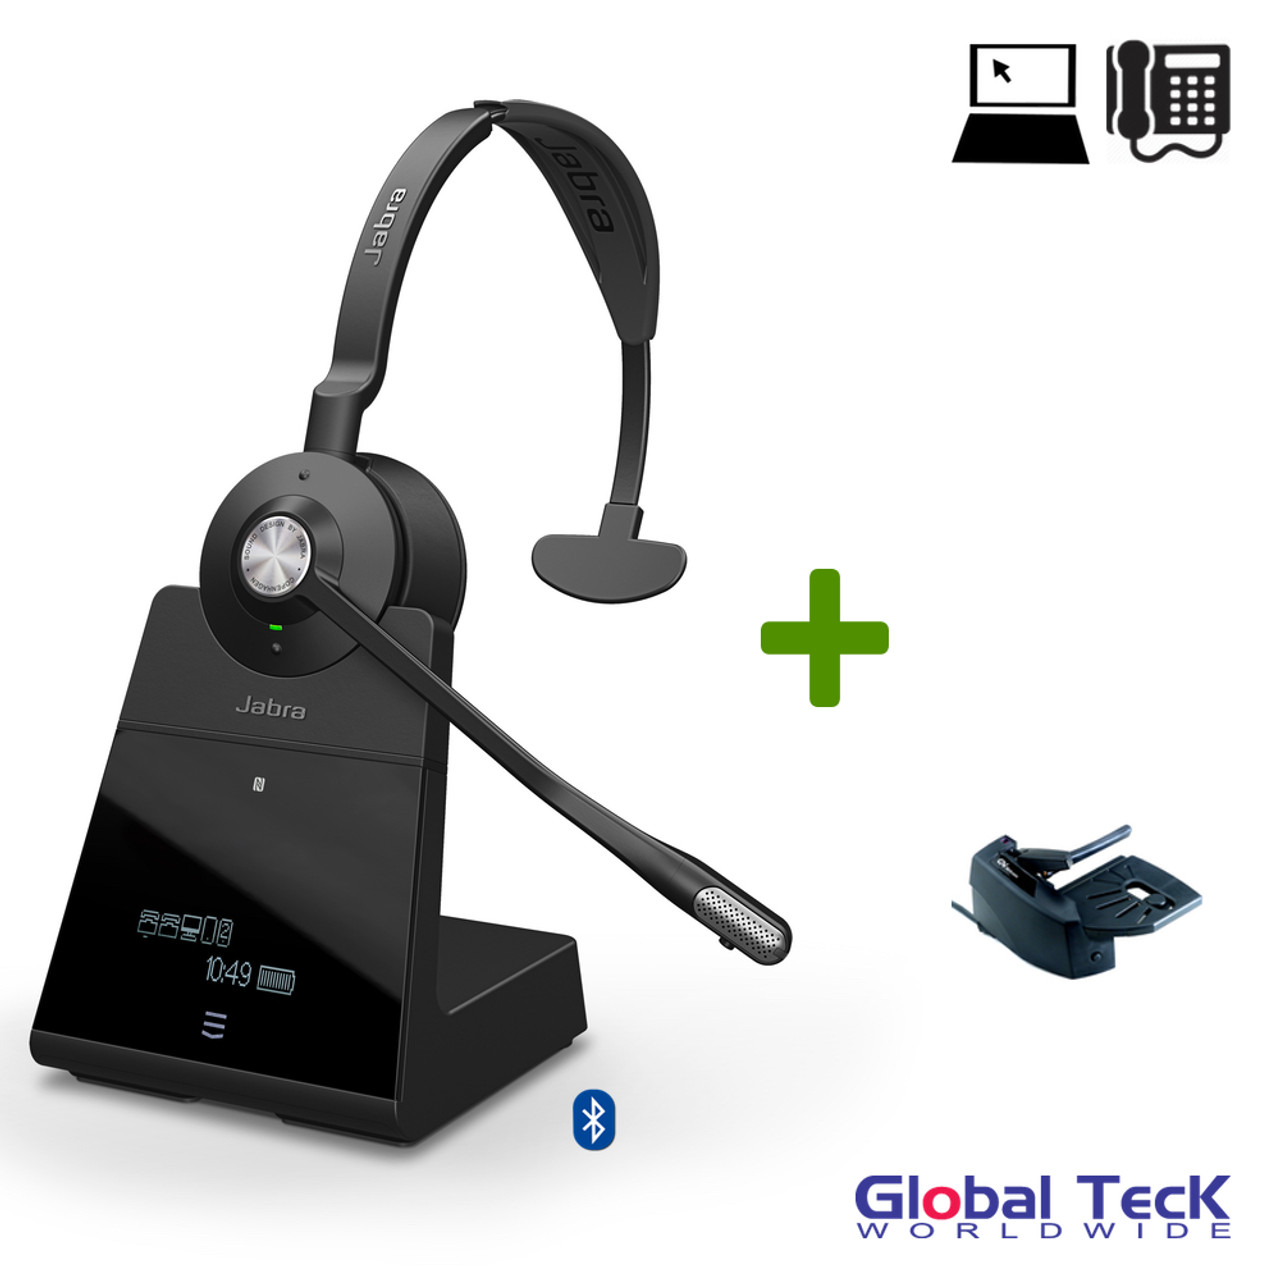 Jabra Engage 75 Wireless Mono Headset Bundle 9556 583 125 B Bluetooth Pc Deskphone Usb Nfc Dect Skype For Business Certified Lifter Included 13 Hours Battery Integrated Busylight Connect 5 Devices